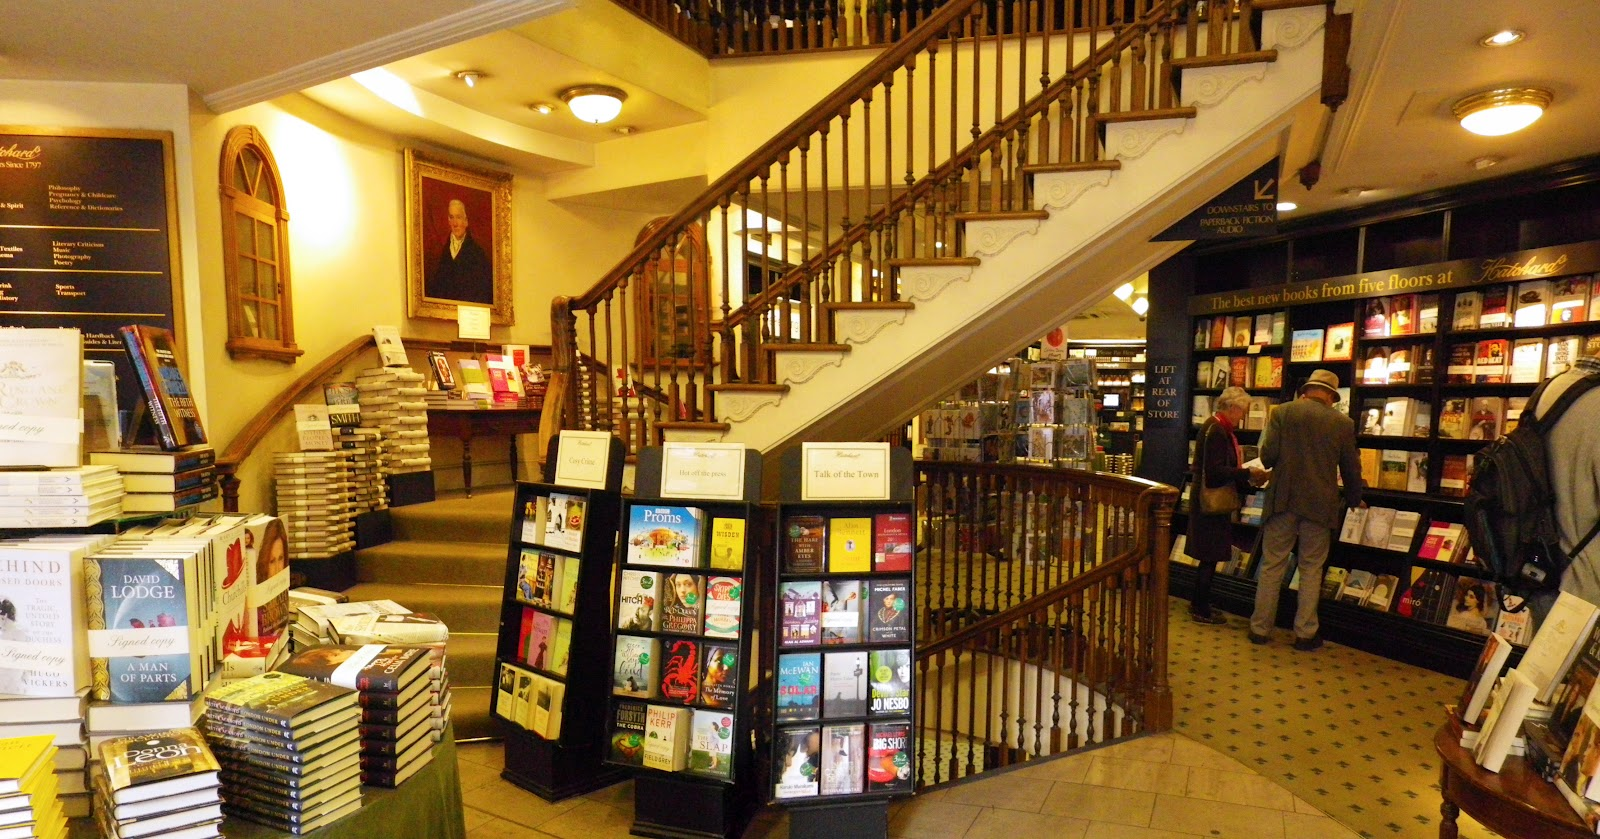 Travelling through literary history at Hatchards - Verge ...